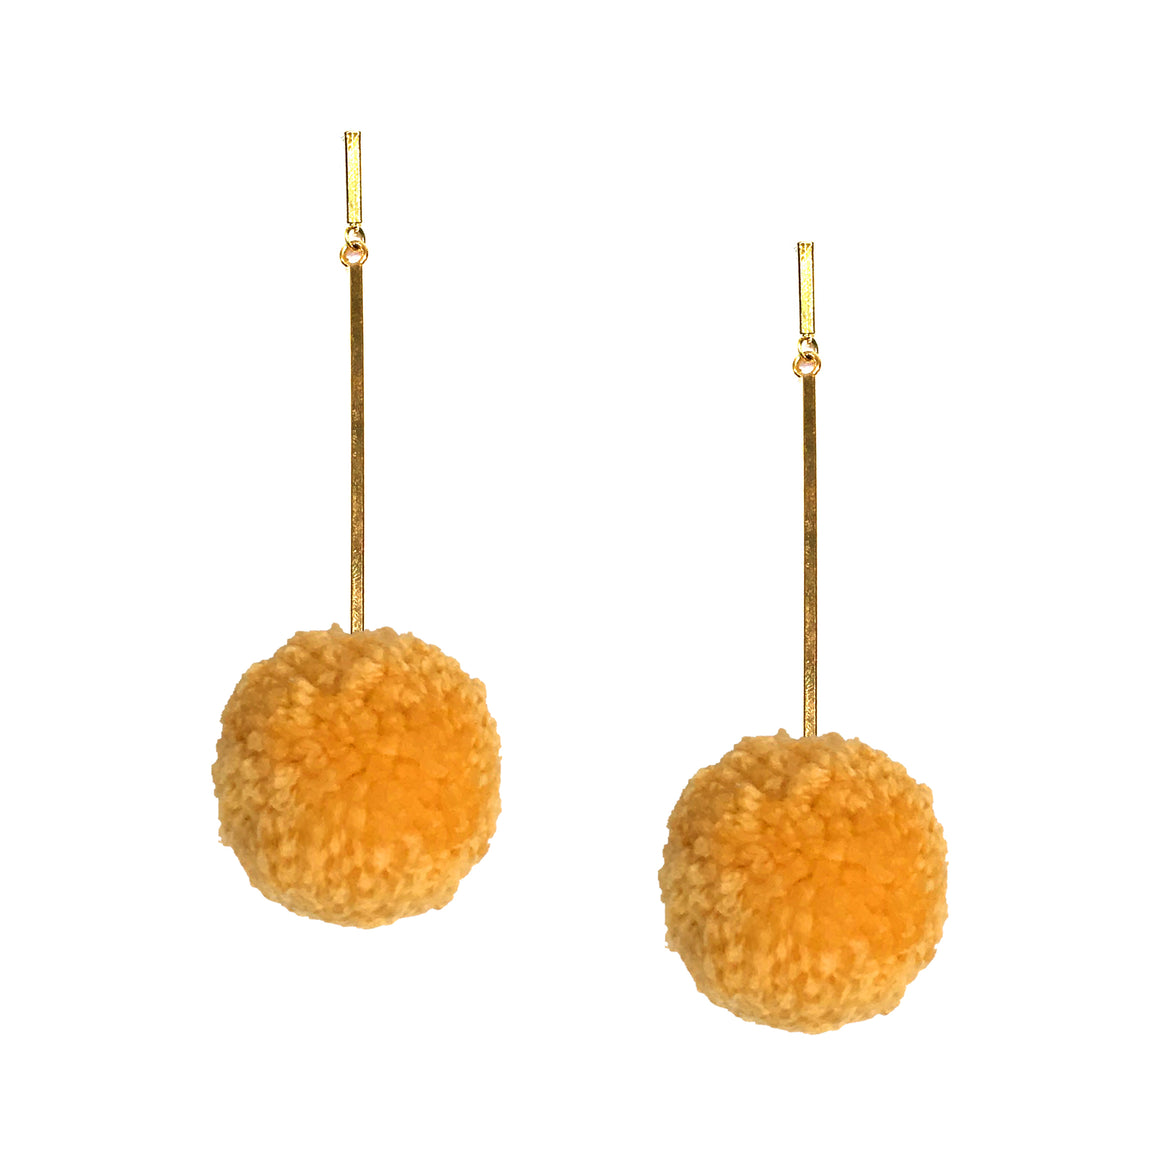 "Sun Gold 2"" Yarn Pom Pom Earring"